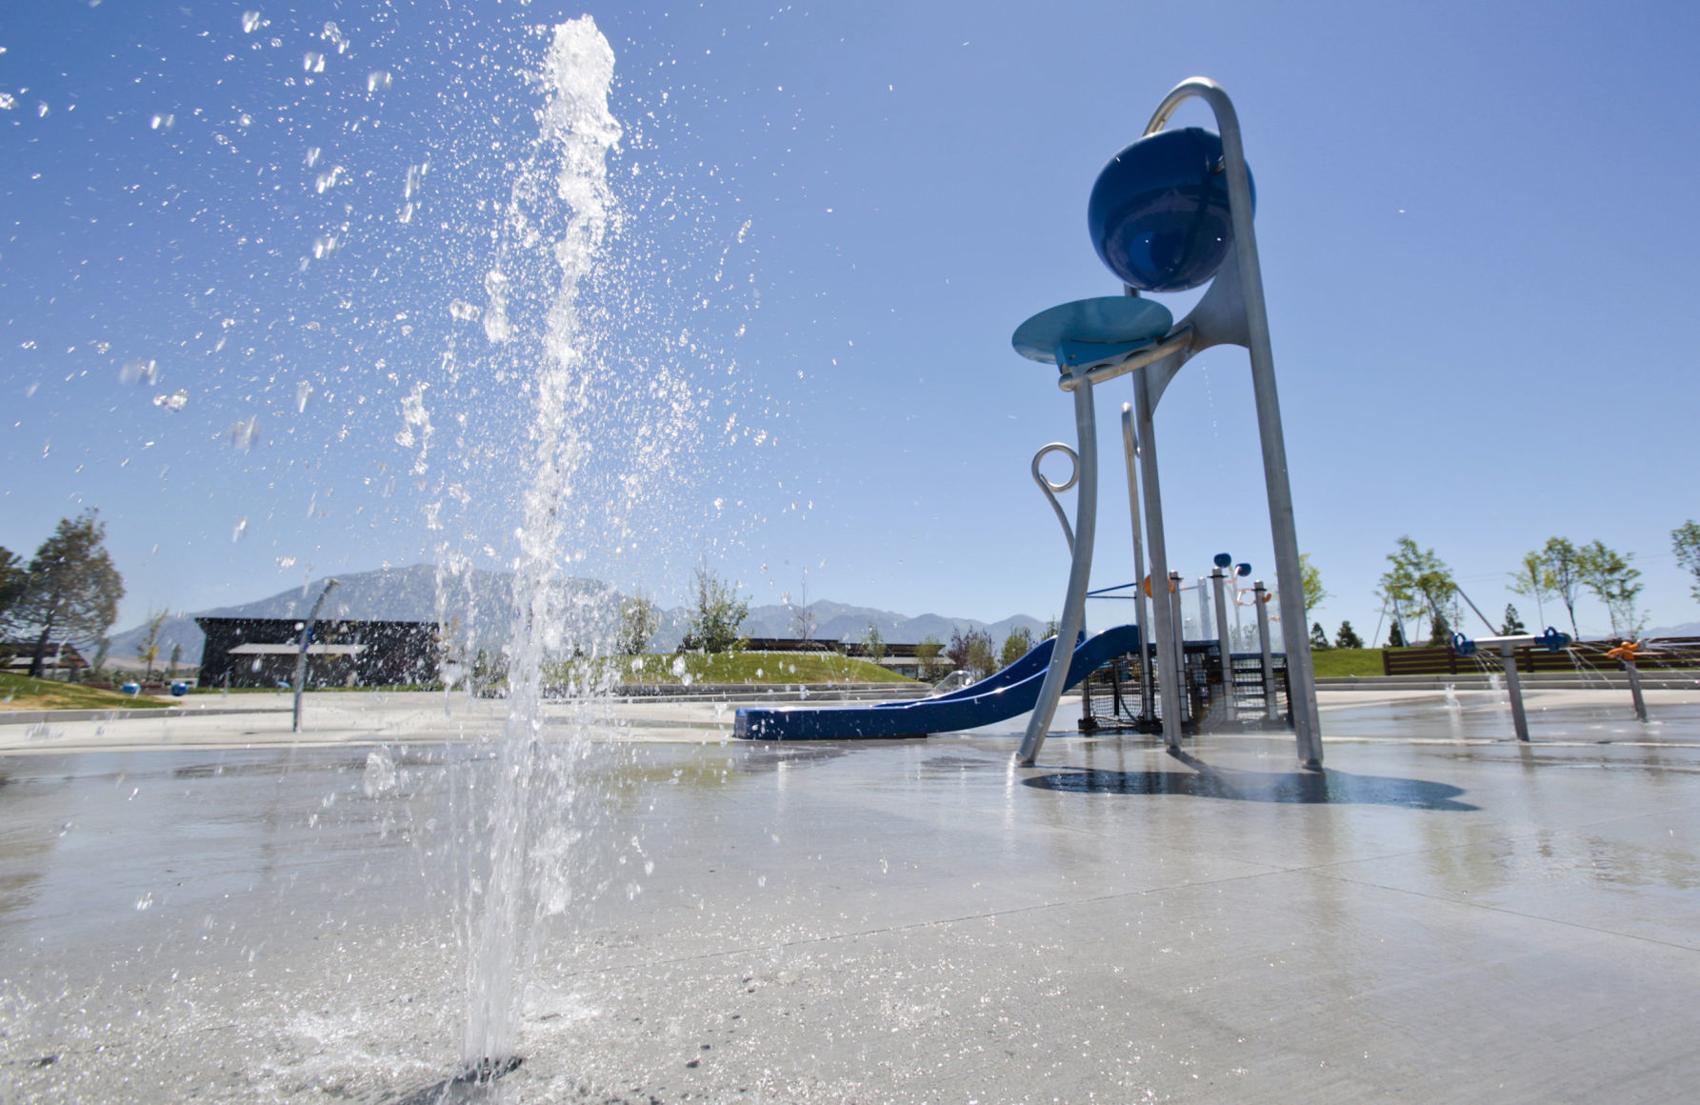 Vineyard Grove Park Splash Pad, Vineyard, UT